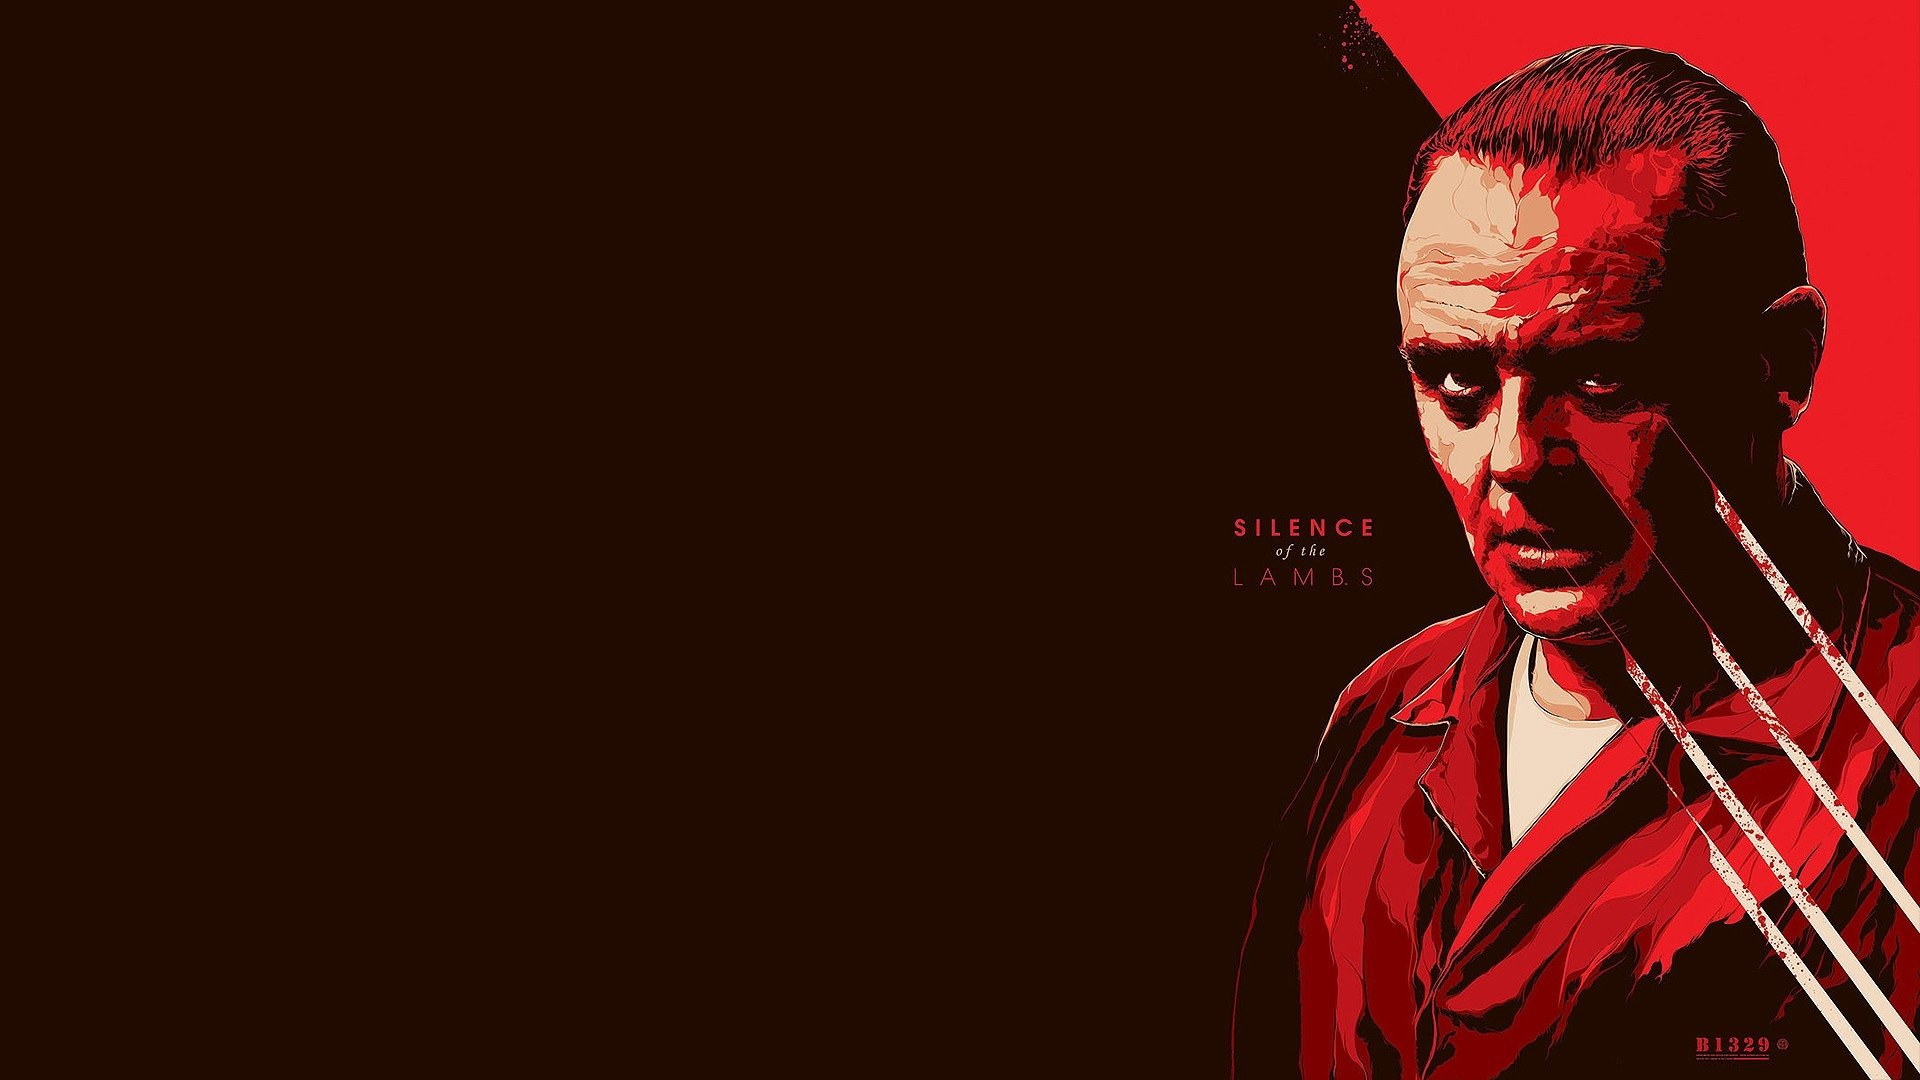 21 The Silence Of The Lambs HD Wallpapers Background Images 1920x1080